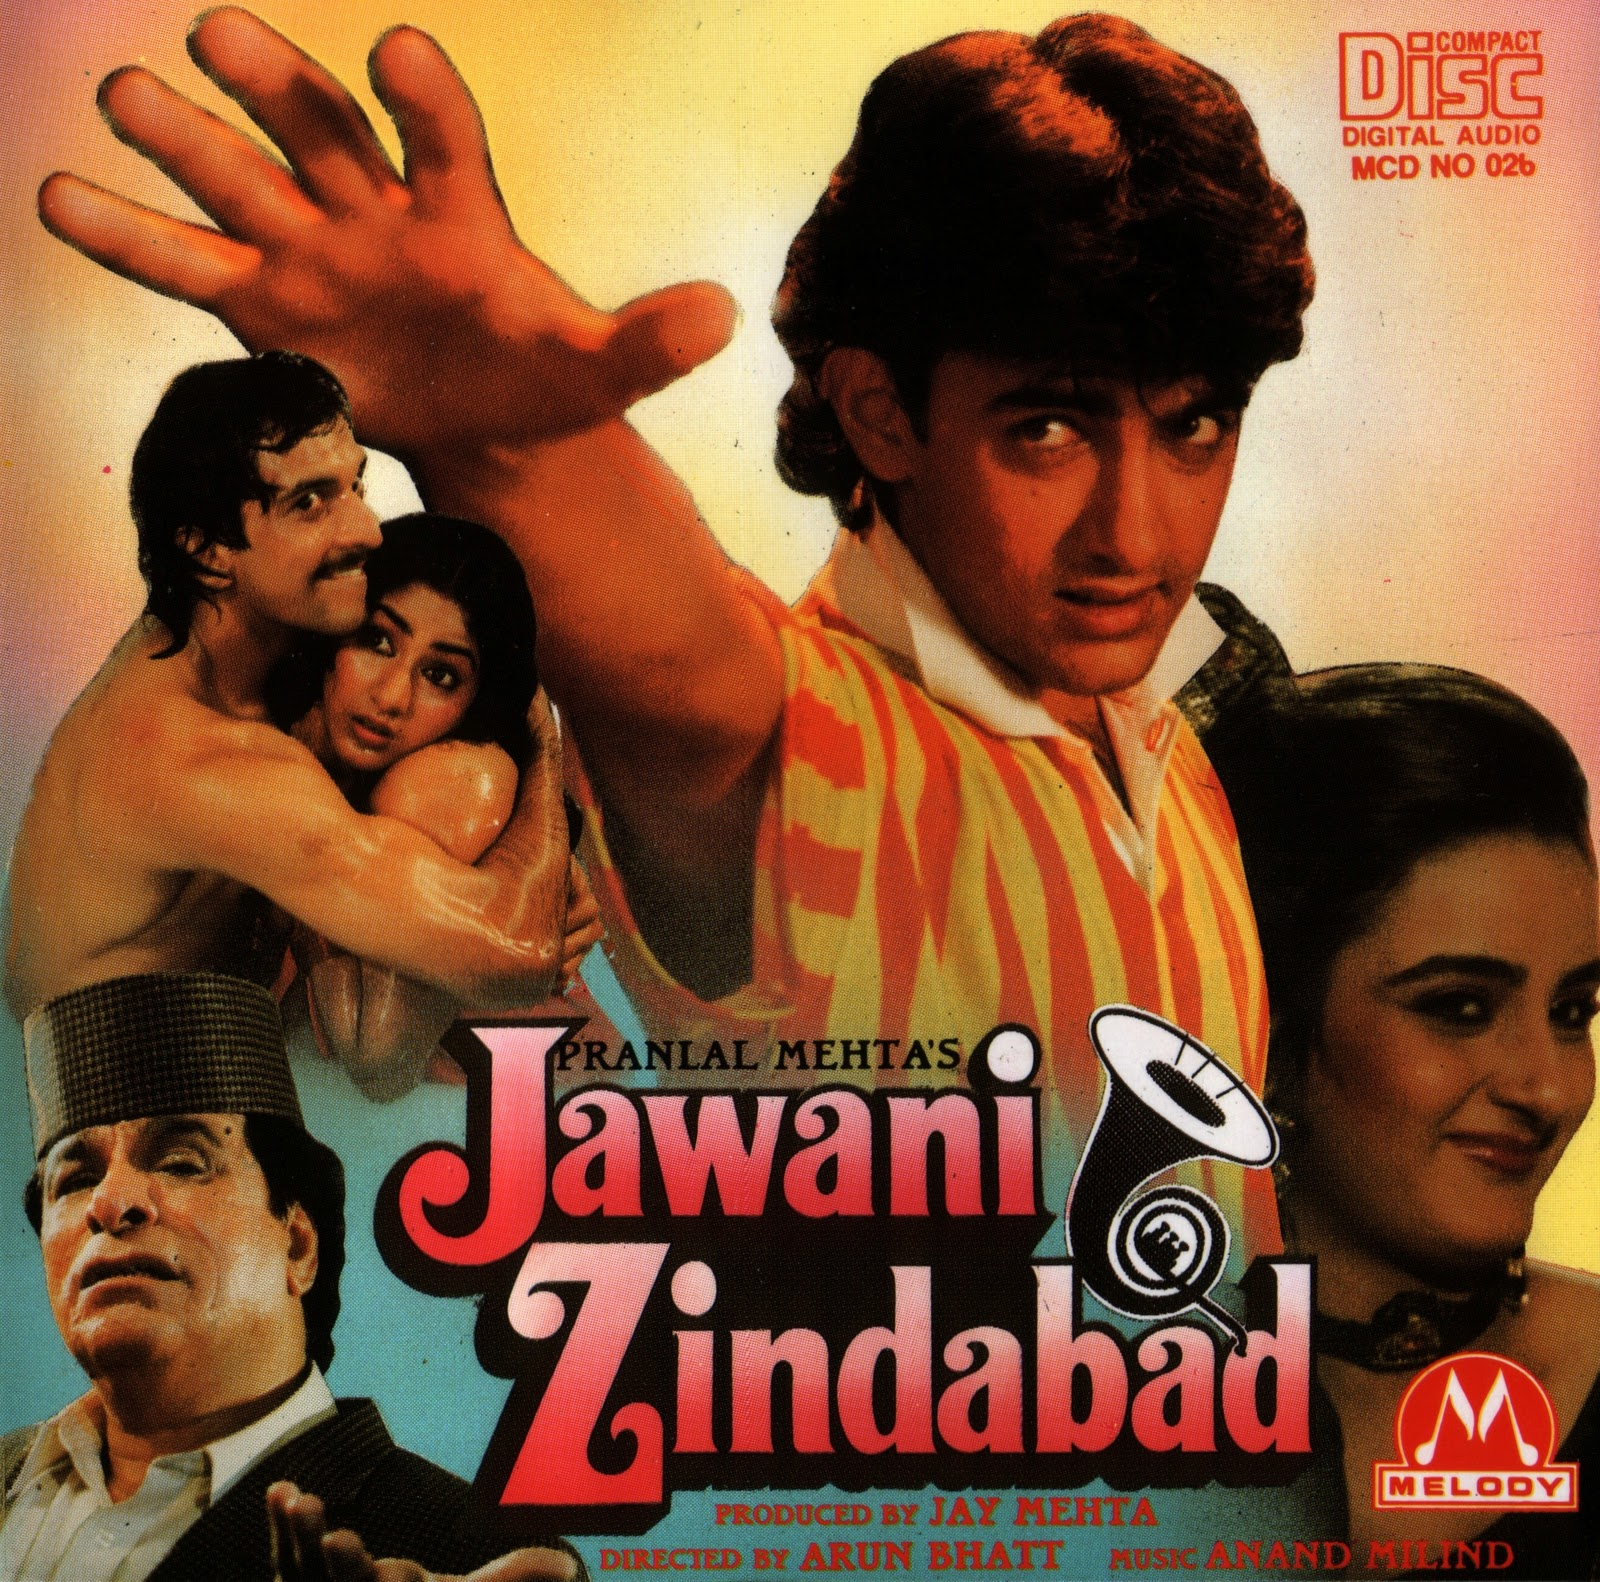 Main Woh Duniya Hoo Mp3 Songs Bestwap: AAMIR KHAN FANS CLUB INDONESIA: Jawani Zindabad (1990